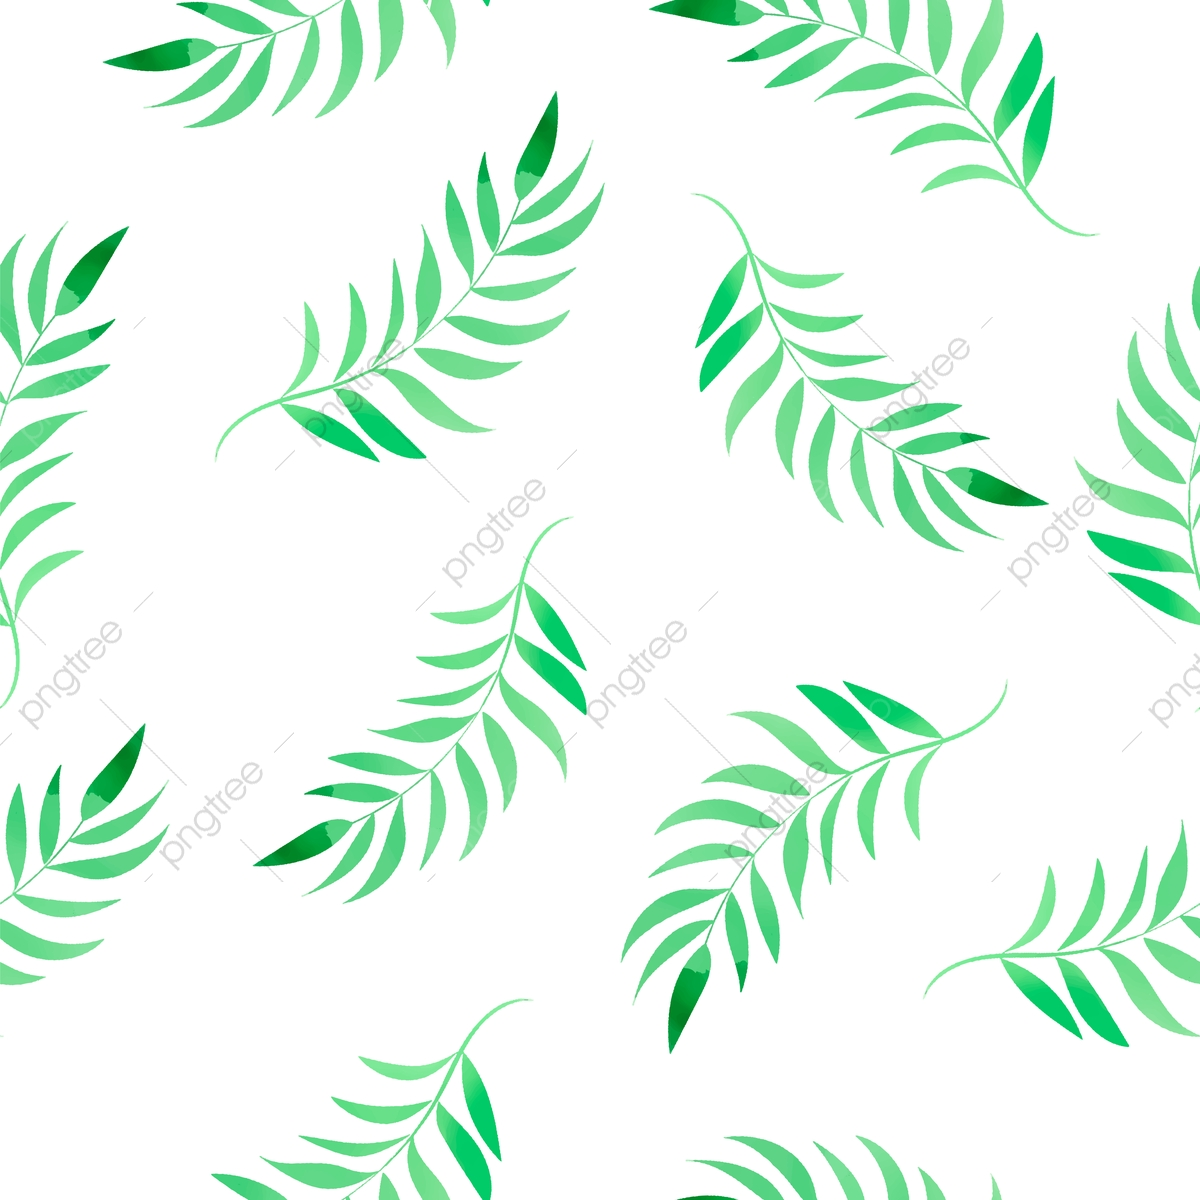 Wohndesign Software: Watercolor Tropical Leaves Floral Color Watercolor